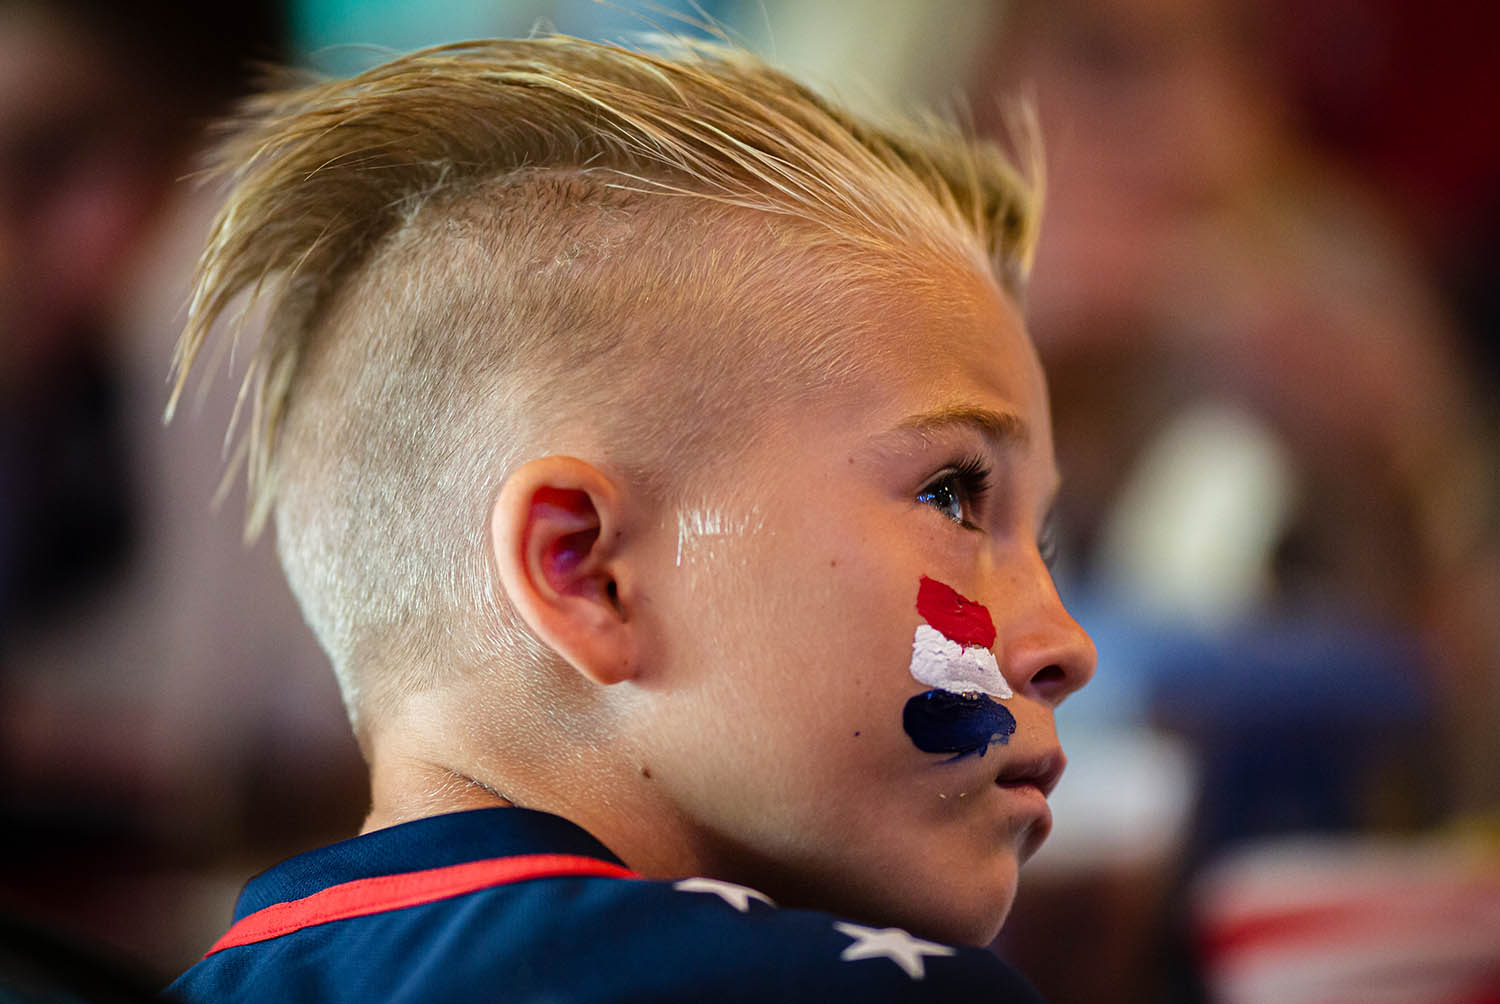 Cole Woodward, 9, of Chatham, Ill., watches the United States take on the Netherlands in the Women's World Cup final during a watch party hosted by the American Outlaws Land of Lincoln chapter at The Alamo, Sunday, July 7, 2019, in Springfield, Ill. [Justin L. Fowler/The State Journal-Register]